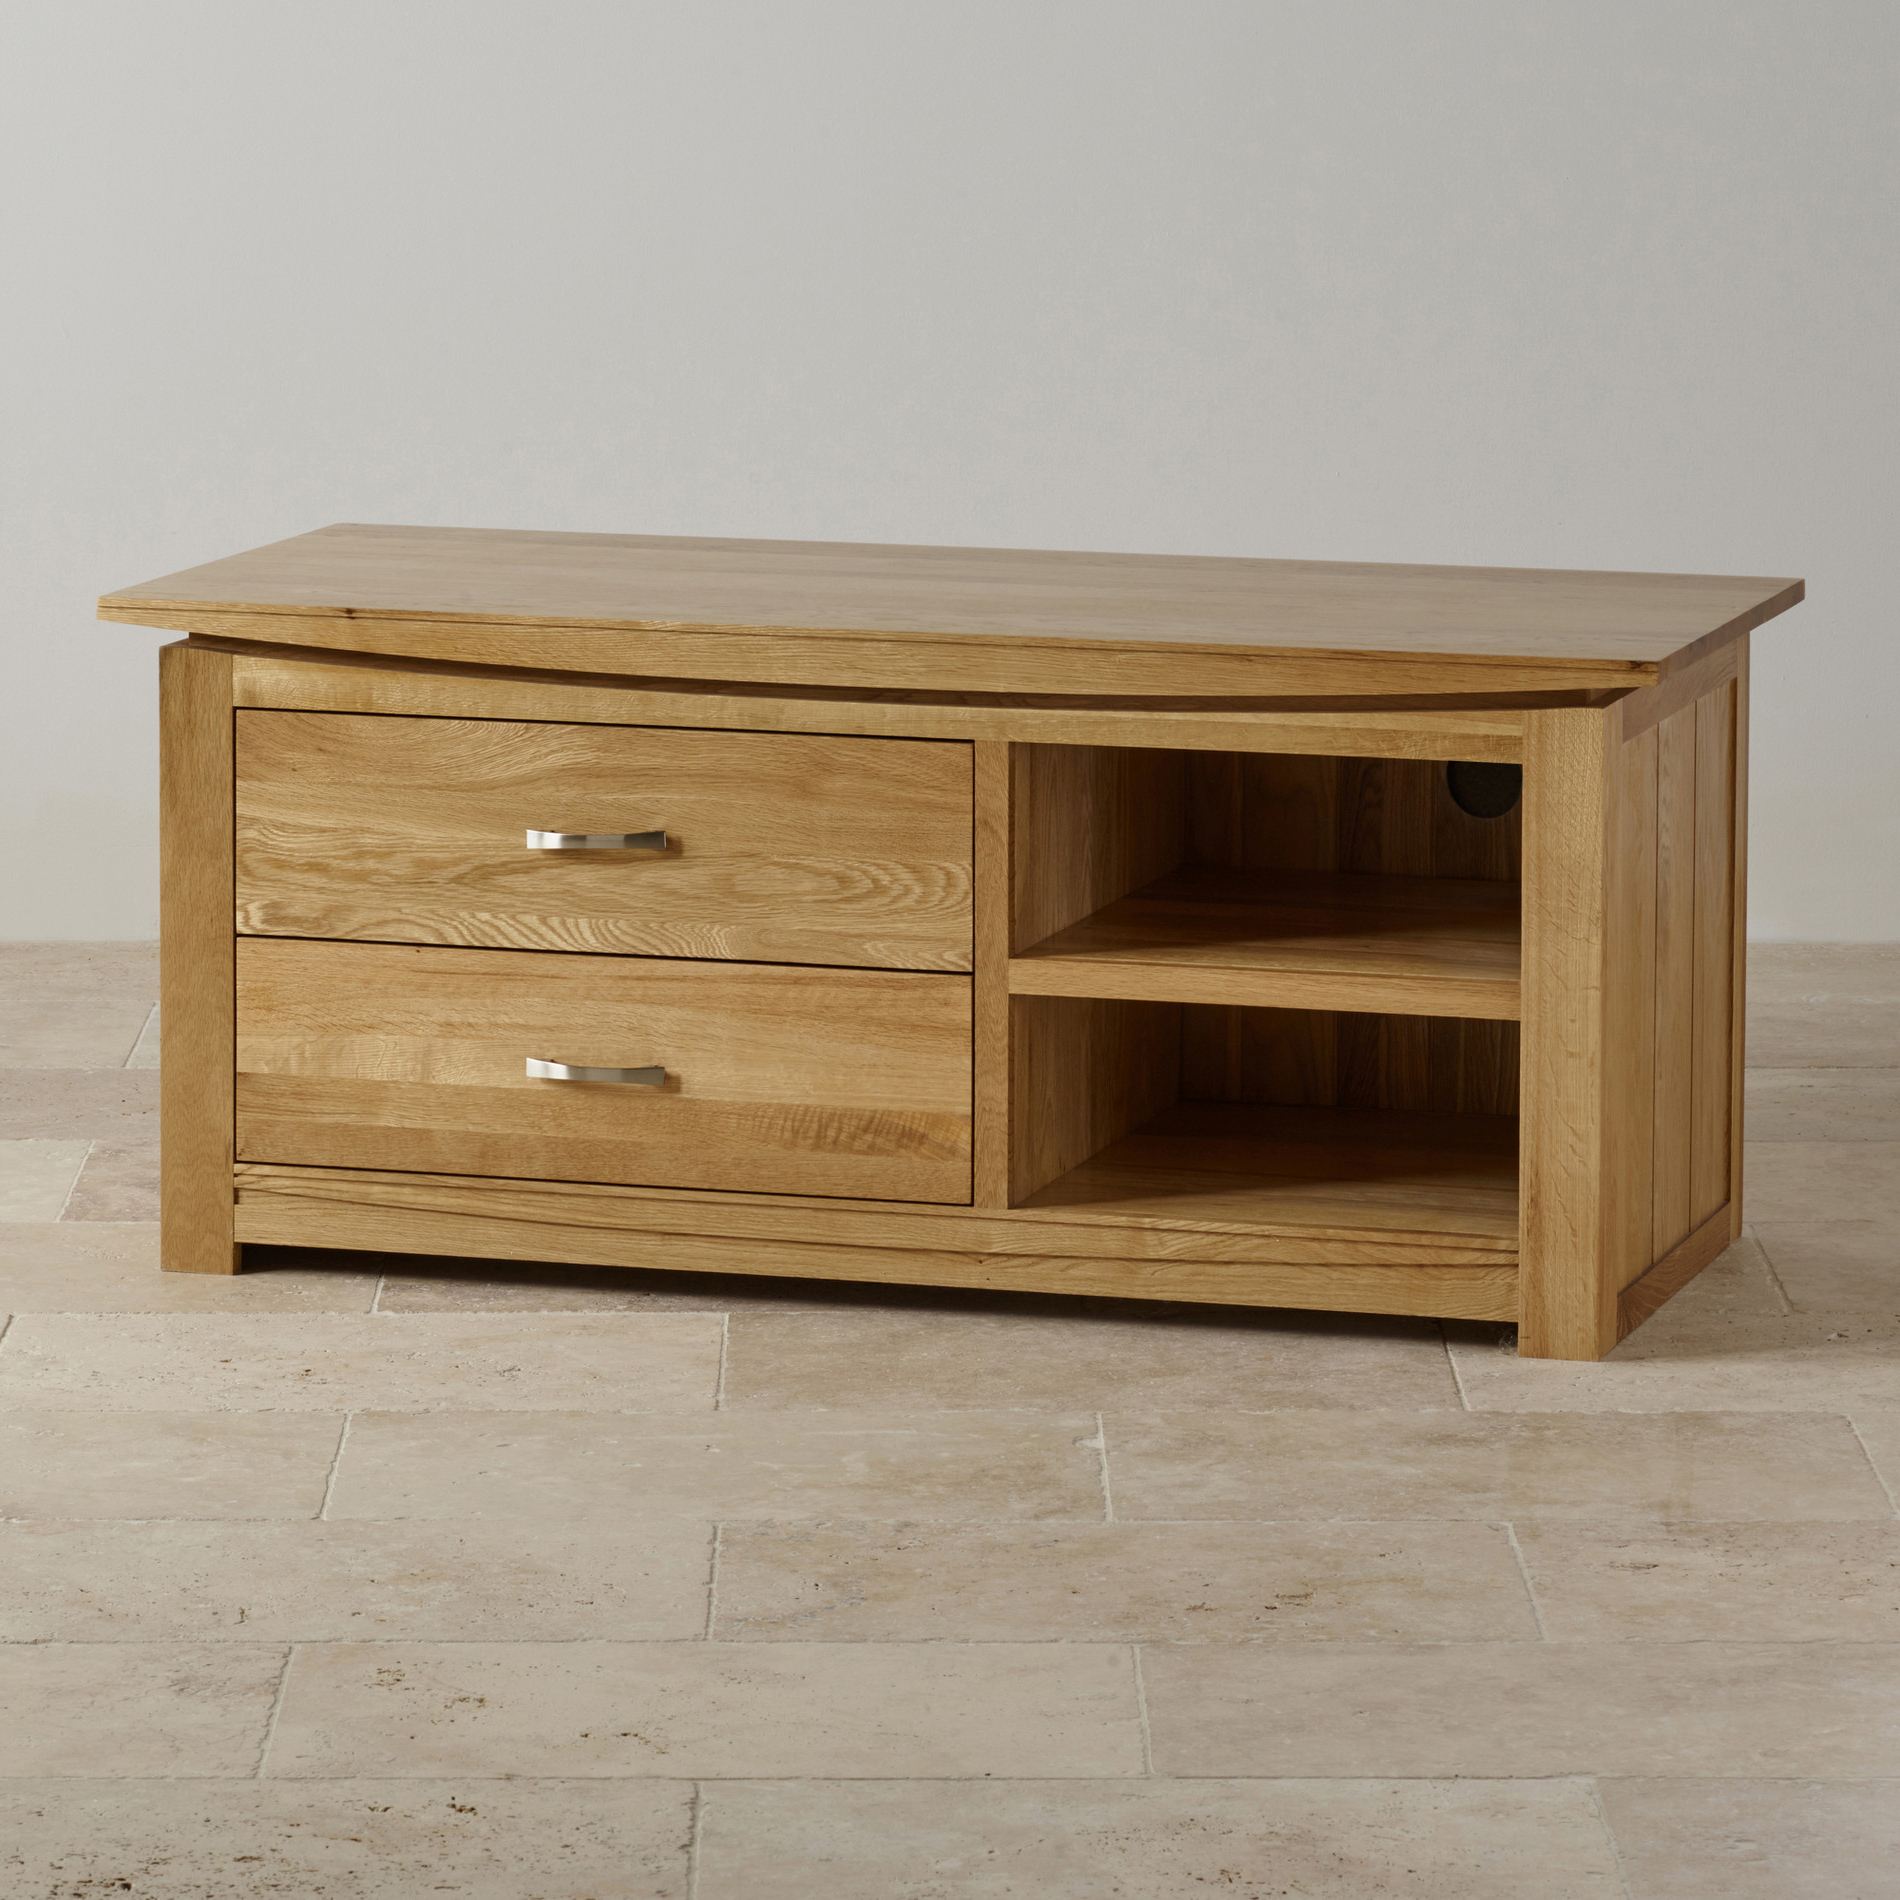 Tokyo Natural Solid Oak Widescreen Tv + Dvd Cabinet For Famous Bromley Extra Wide Oak Tv Stands (View 15 of 25)